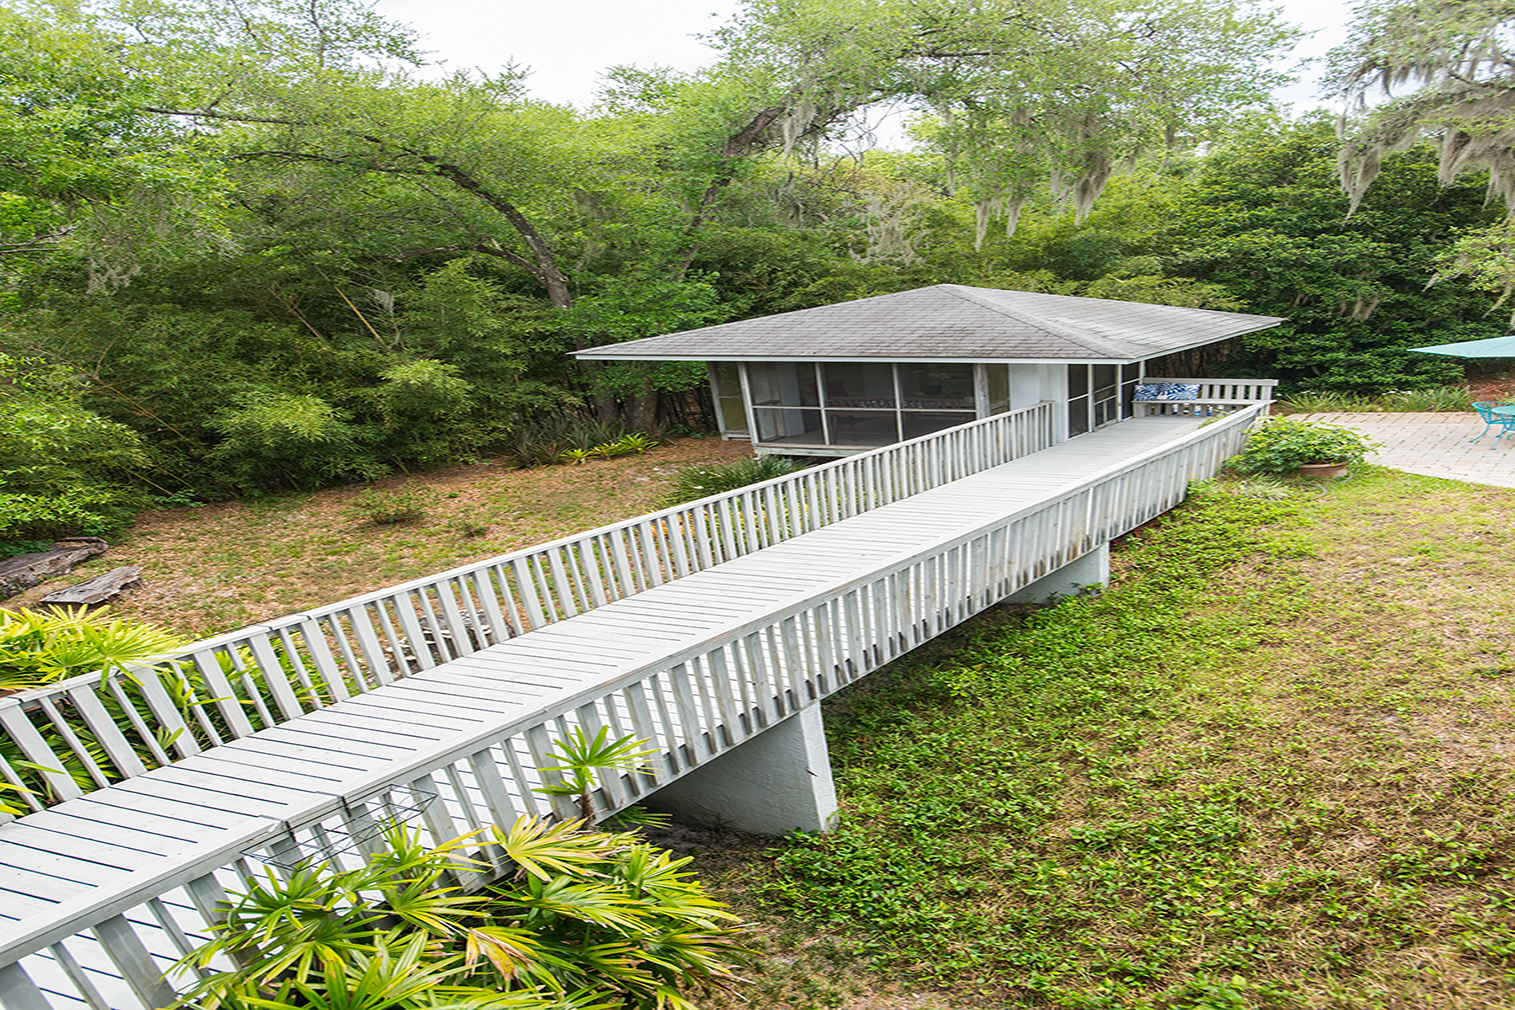 Orlando home lists for $ 865,000, inspired by Frank Lloyd Wright